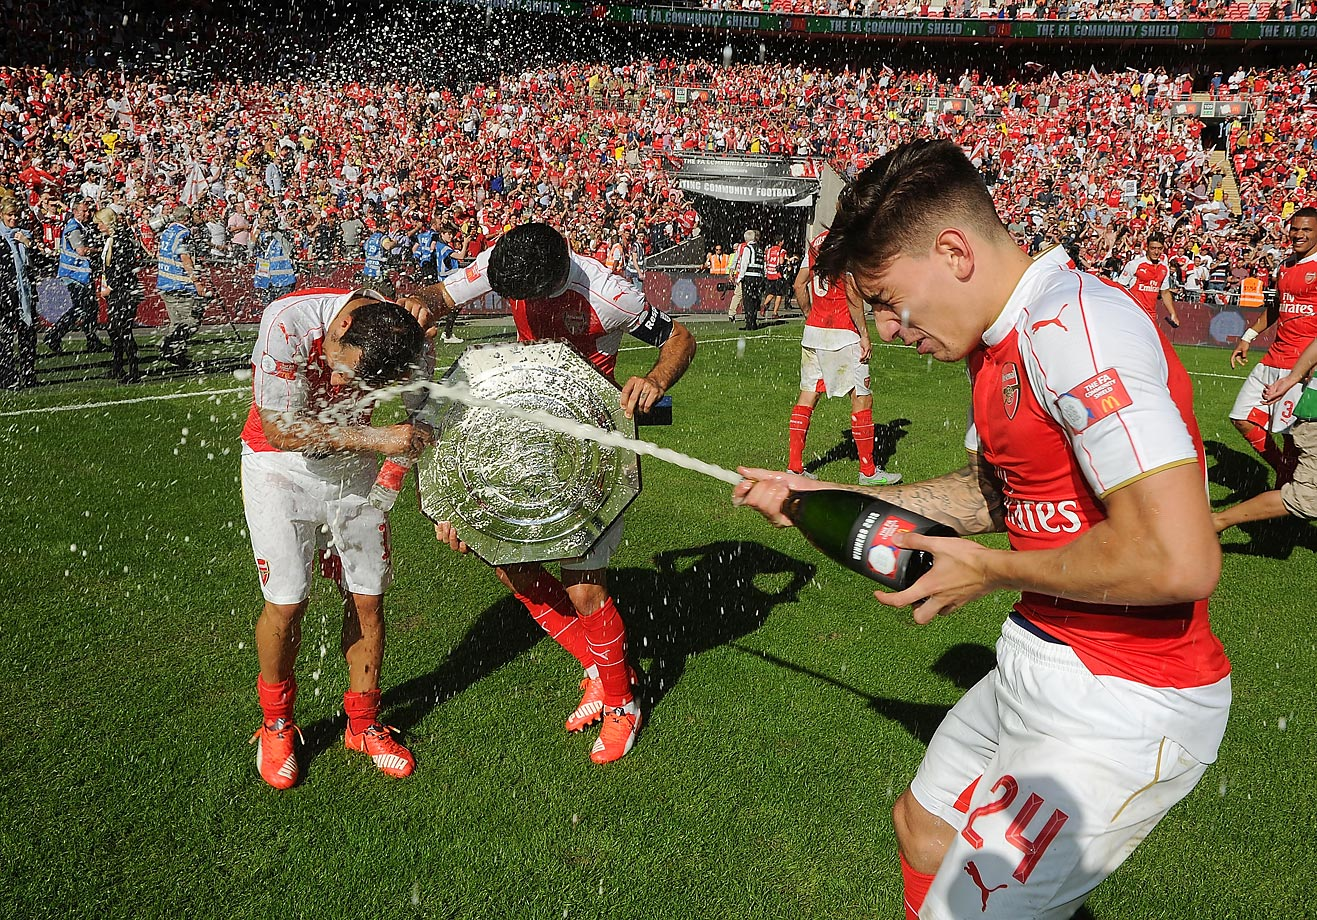 Santi Cazorla, Mikel Arteta and Hector Bellerin celebrate after the FA Community Shield match between Chelsea and Arsenal.